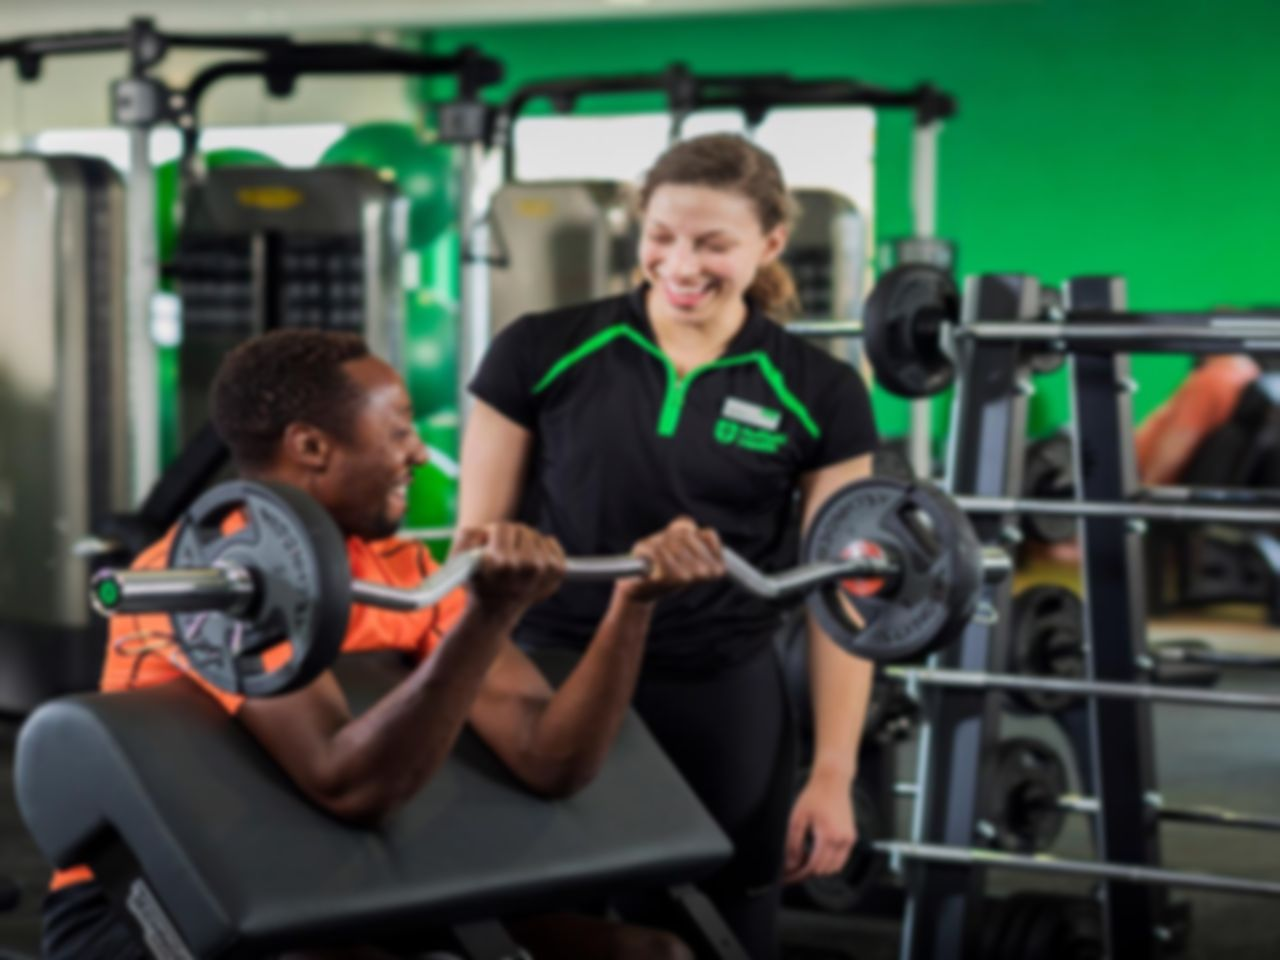 Nuffield Health Taunton Fitness Wellbeing Gym Flexible Gym Passes Ta1 Taunton